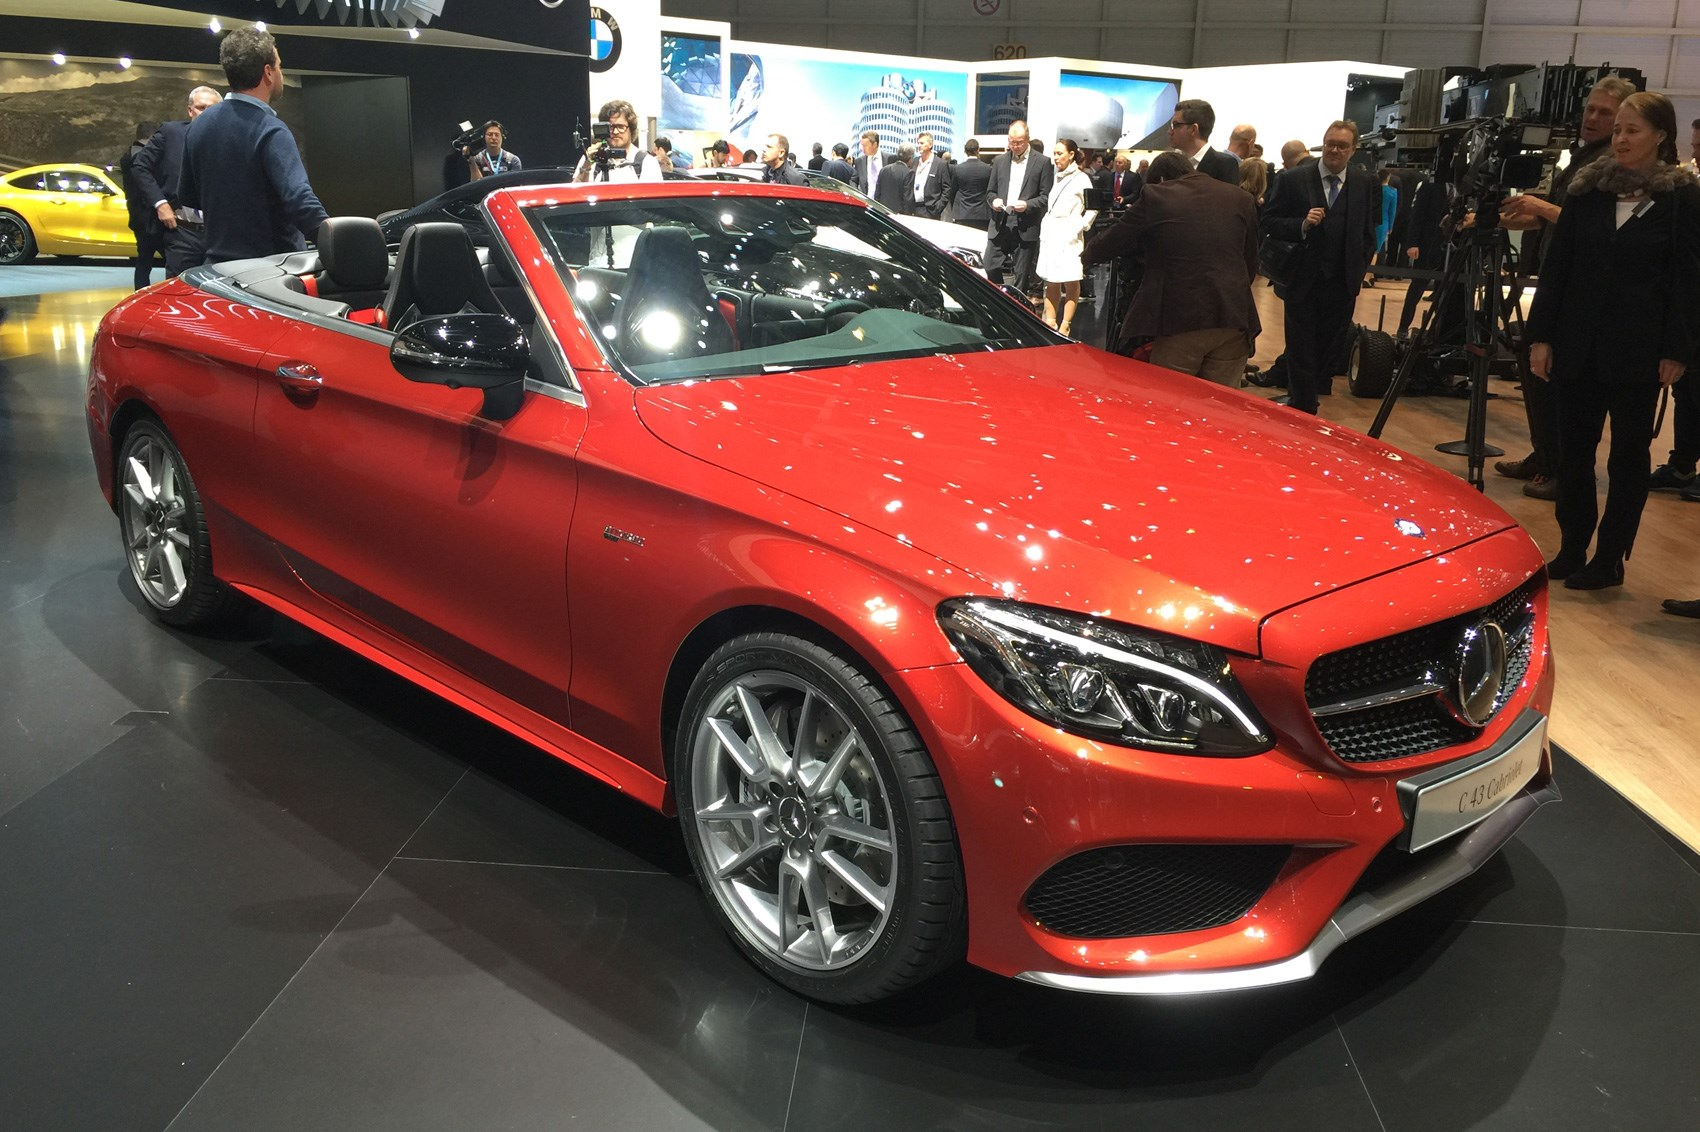 Designer Fabric New 2016 Mercedes C Cl Cabriolet Revealed At Geneva